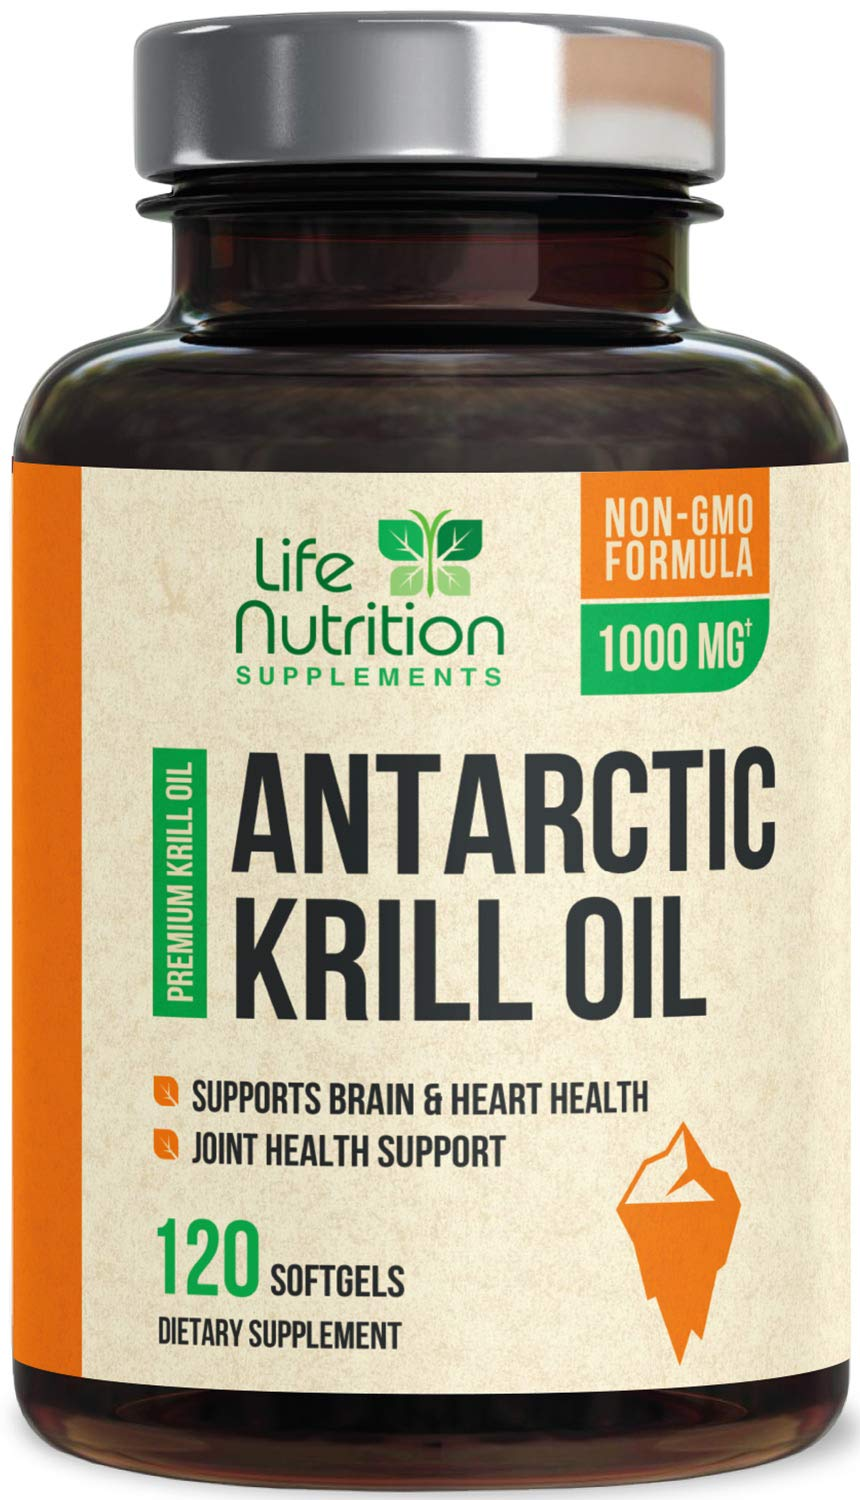 Antarctic Krill Oil Supplement 1000mg Highest Potency Krill w/Omega 3, EPA, DHA & Astaxanthin - Made in USA - Heart & Joint Support, Non-GMO, No Fishy Aftertaste for Men Women - 120 Softgels